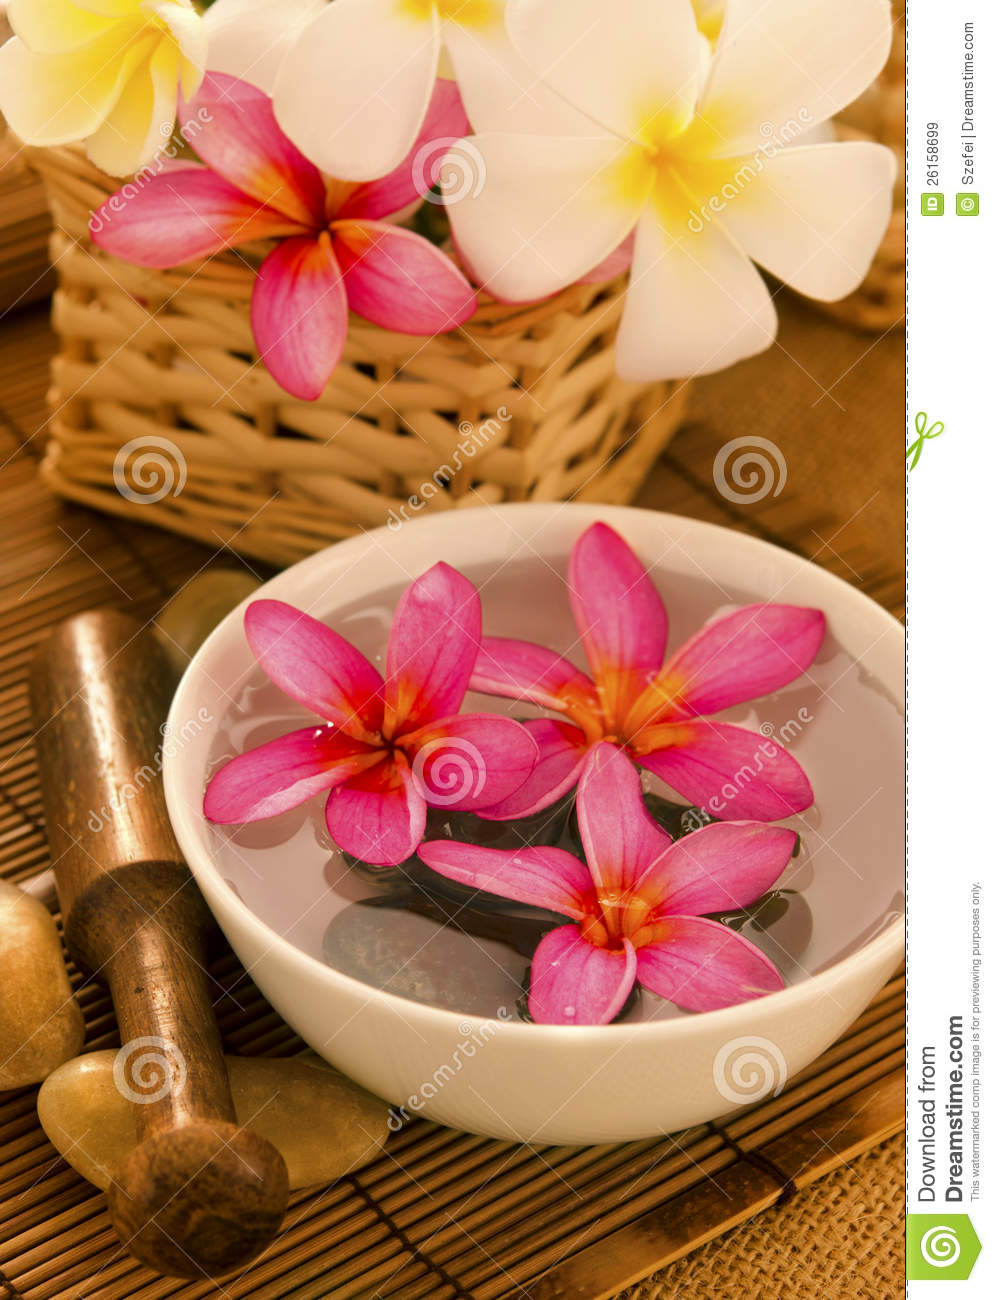 Tropical Spa Retreat Royalty Free Stock Images - Image: 26158699